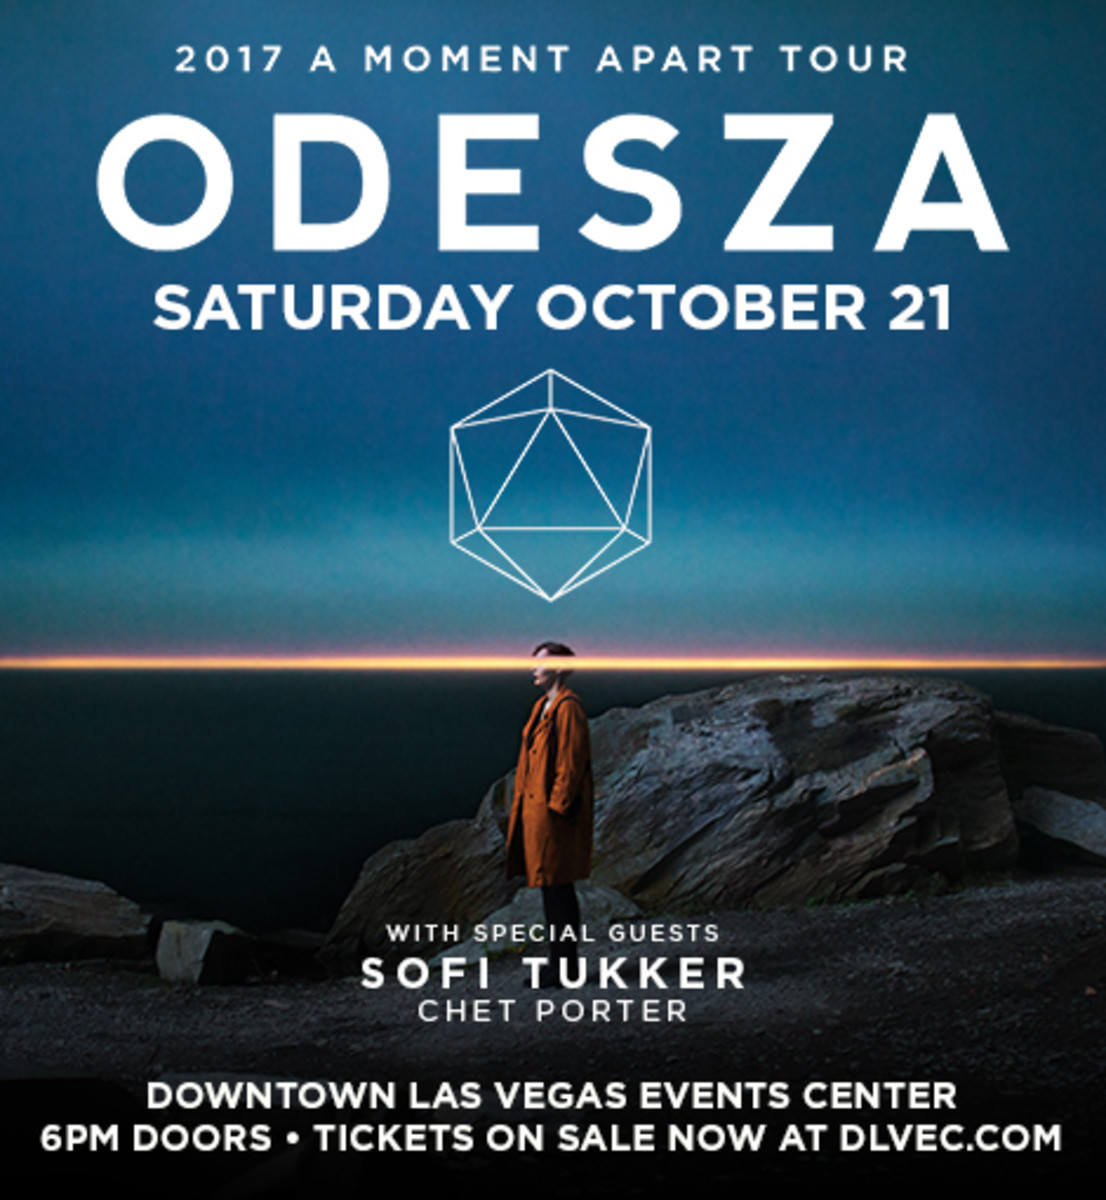 45677 DLVEC Odesza 10_21 ONSALE Banners 470x510 APPROVED